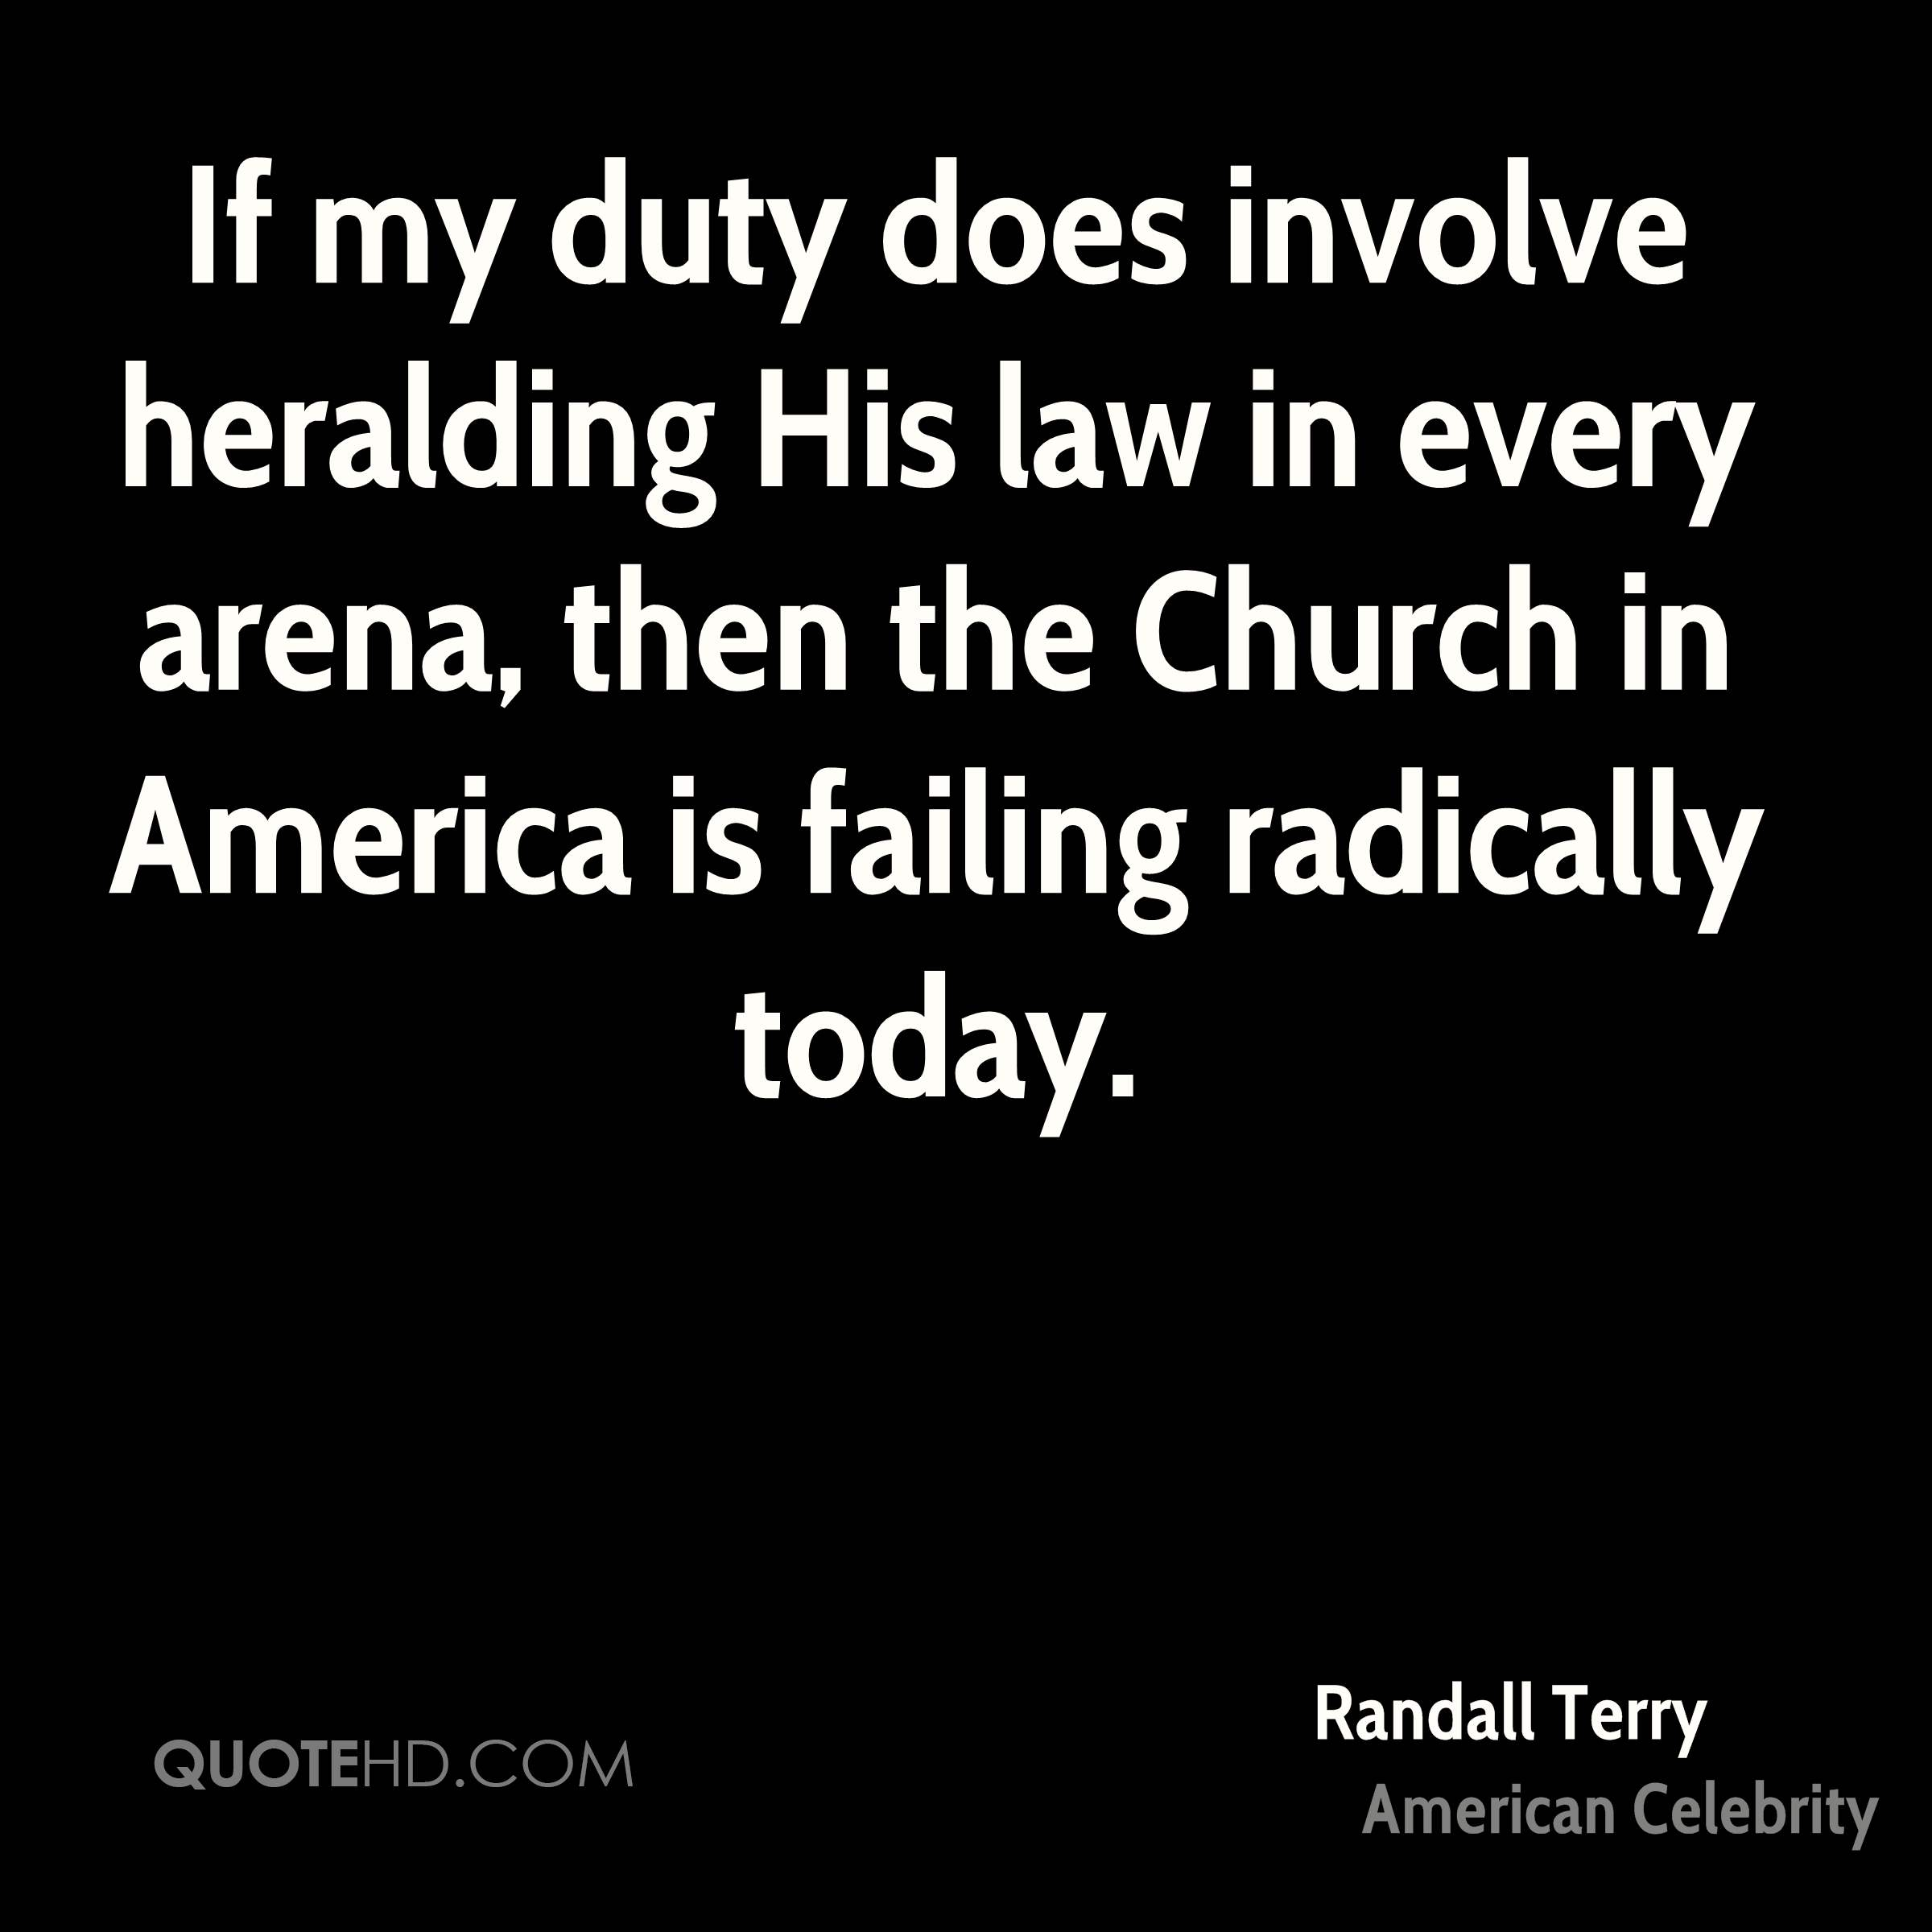 If my duty does involve heralding His law in every arena, then the Church in America is failing radically today.